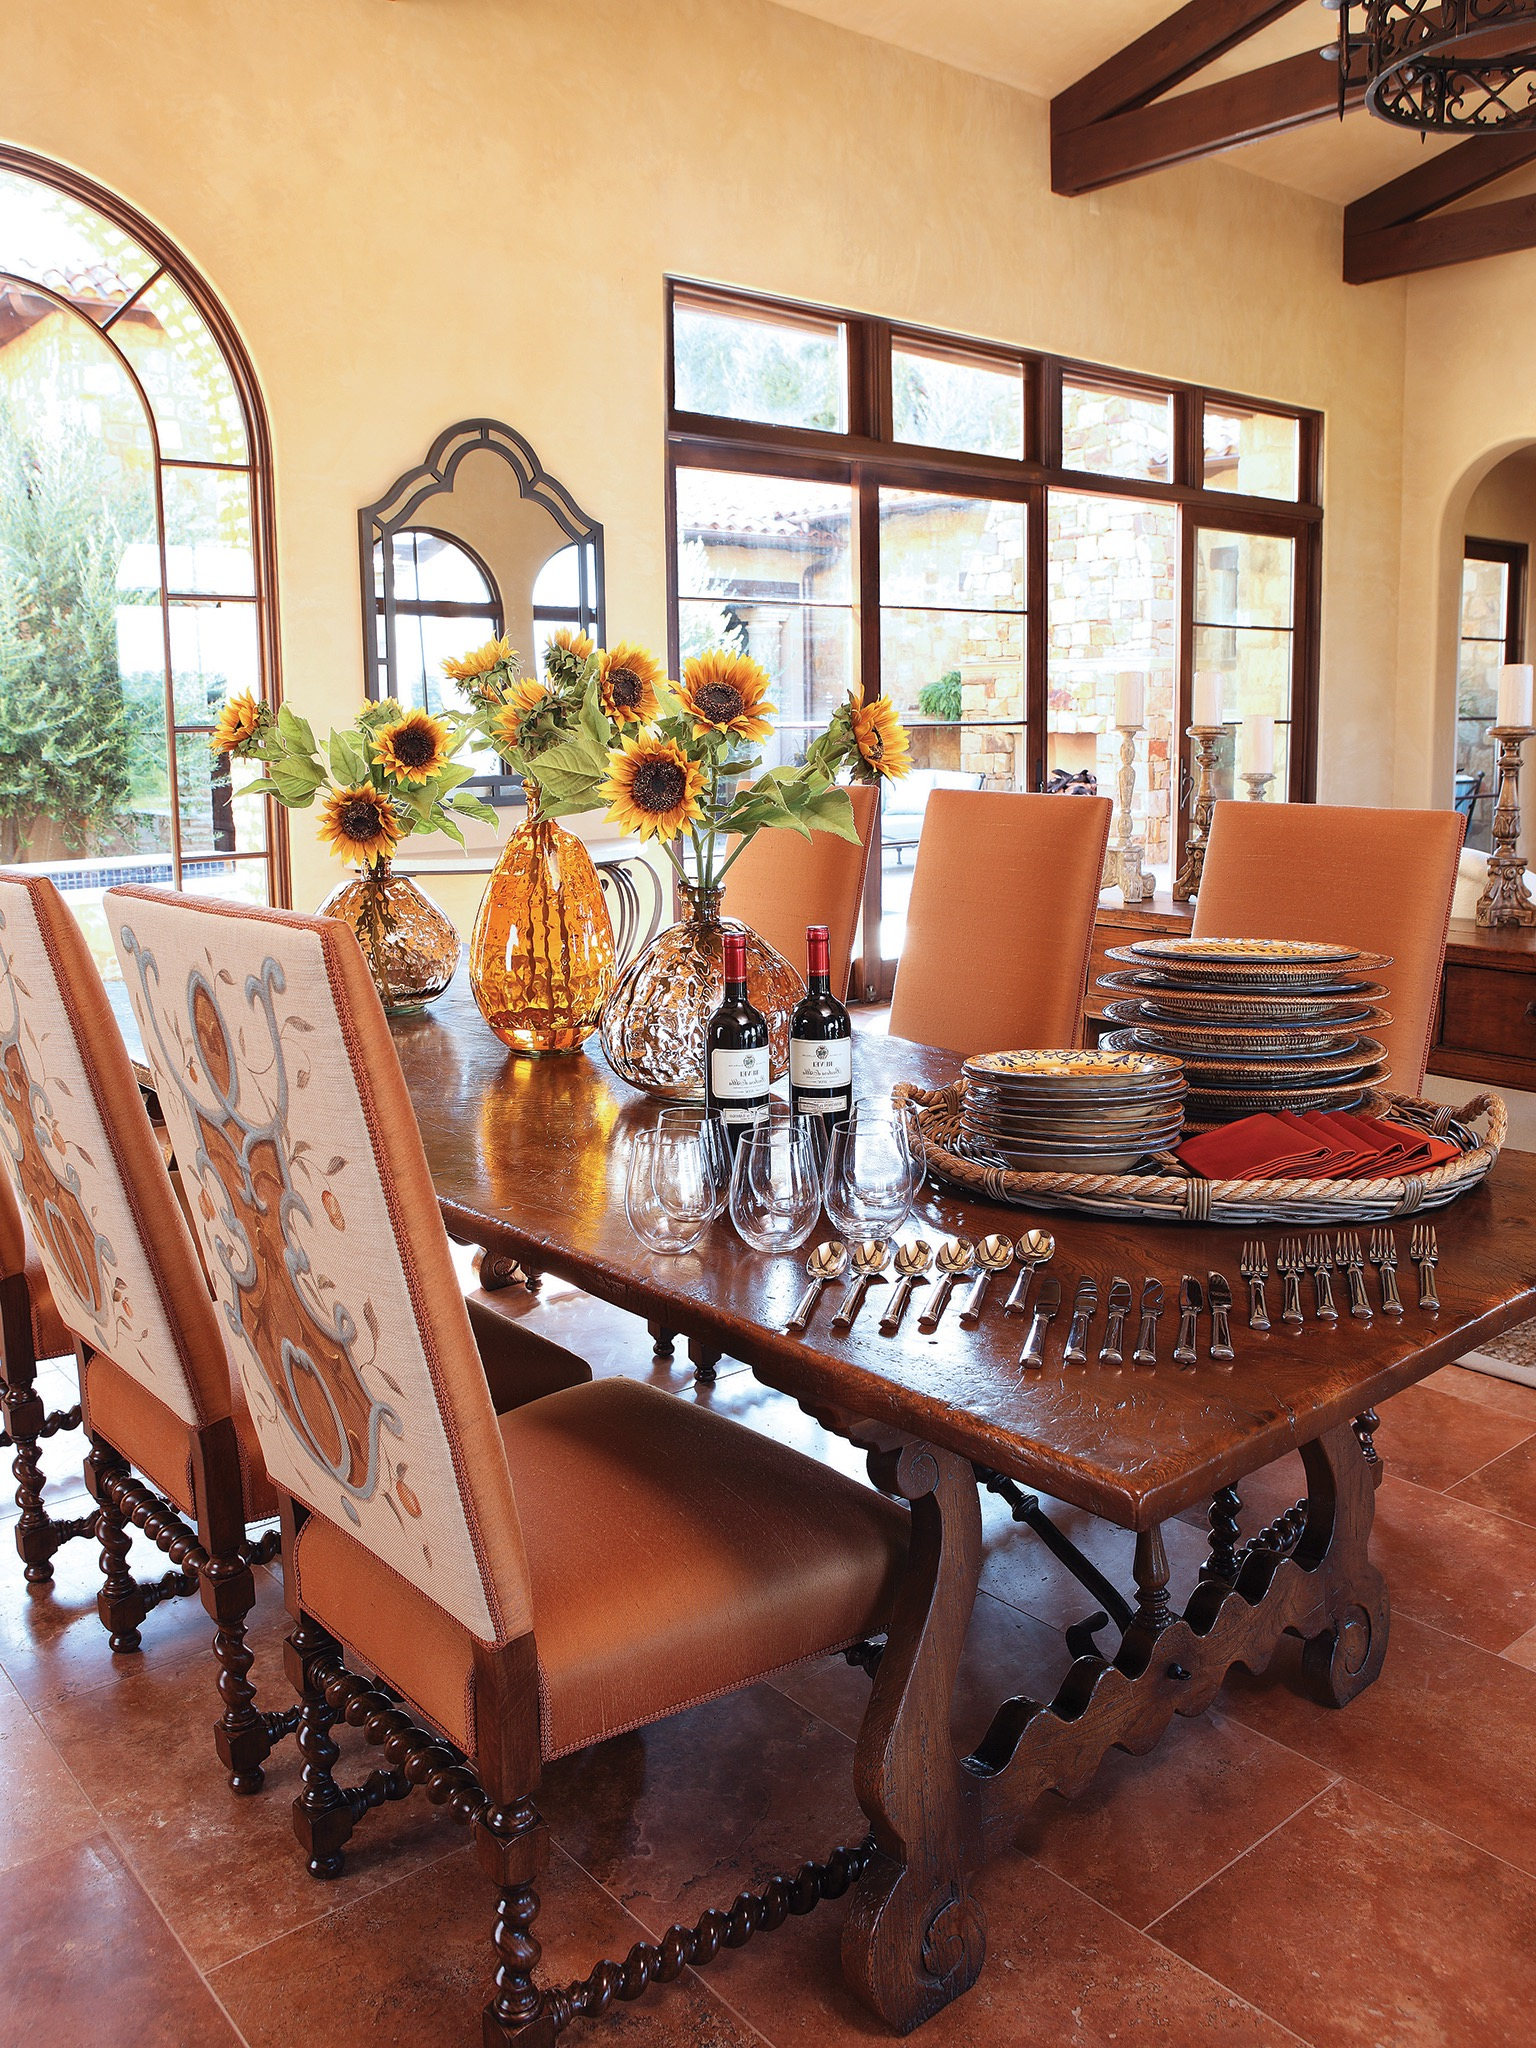 Italian Dining Room In Rustic Style (Image 14 of 36)